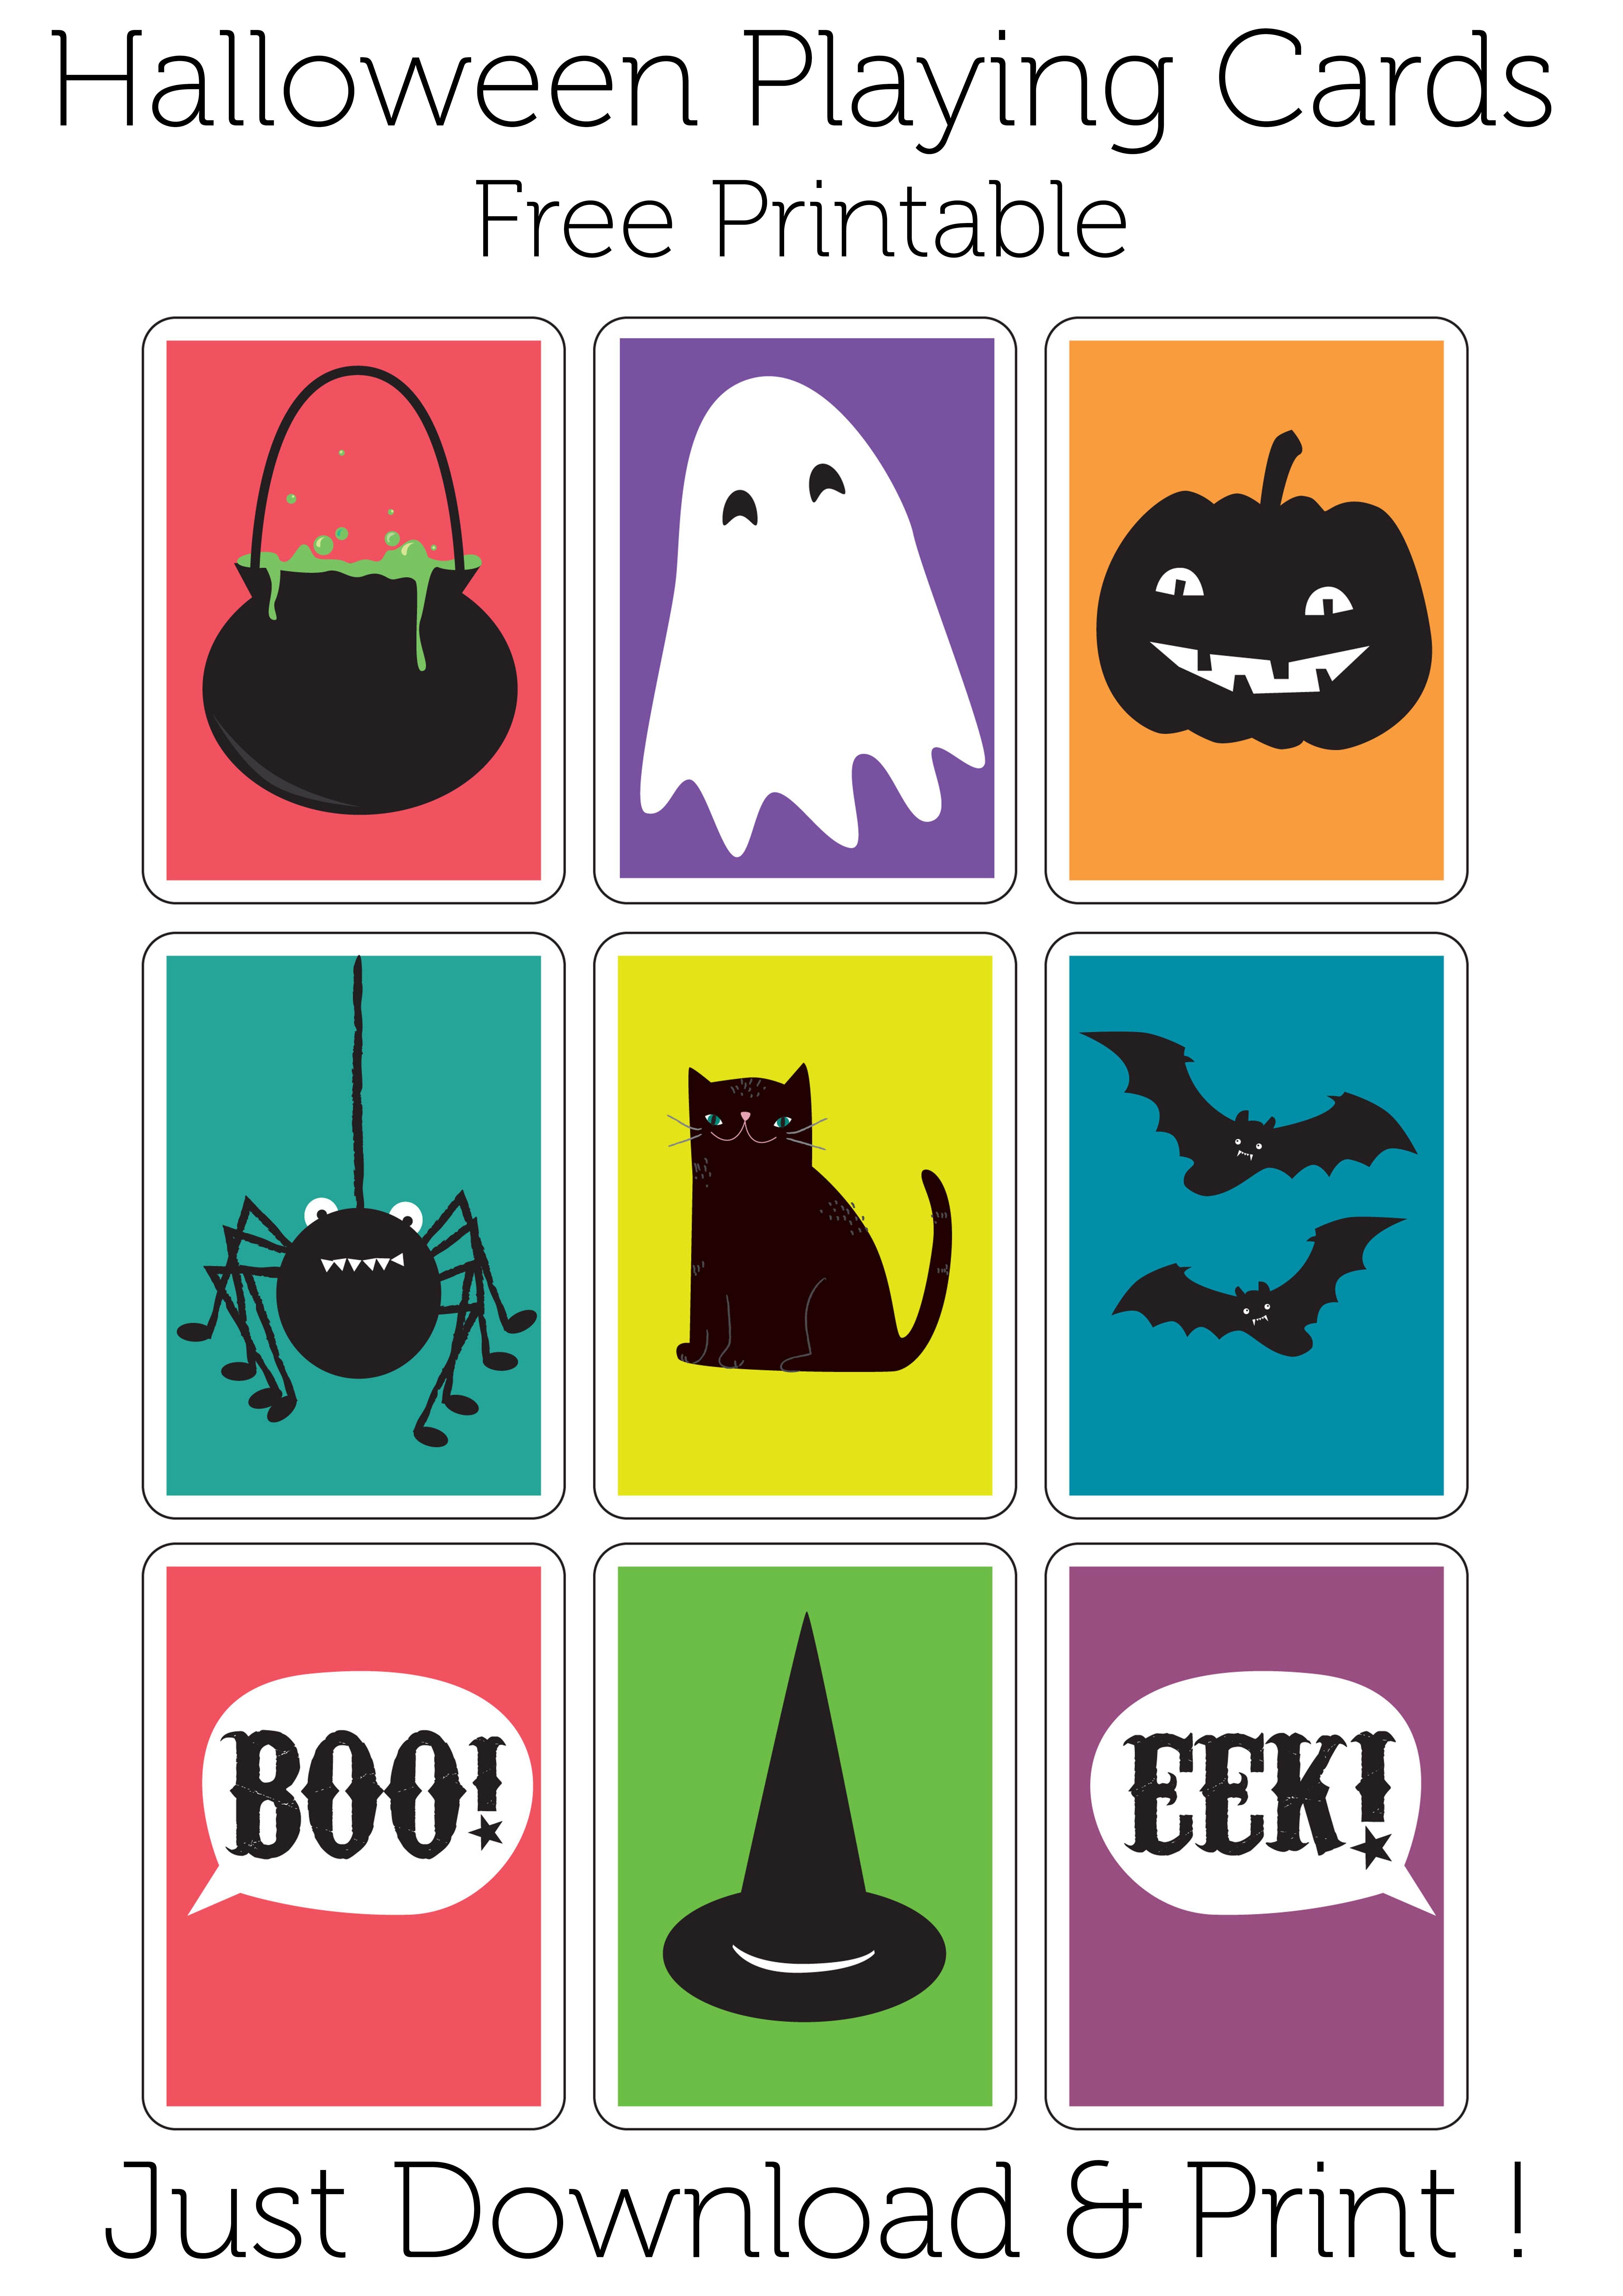 Play A Game Of Haunted Snap With These Halloween Playing Cards. Free - Free Printable Snap Cards